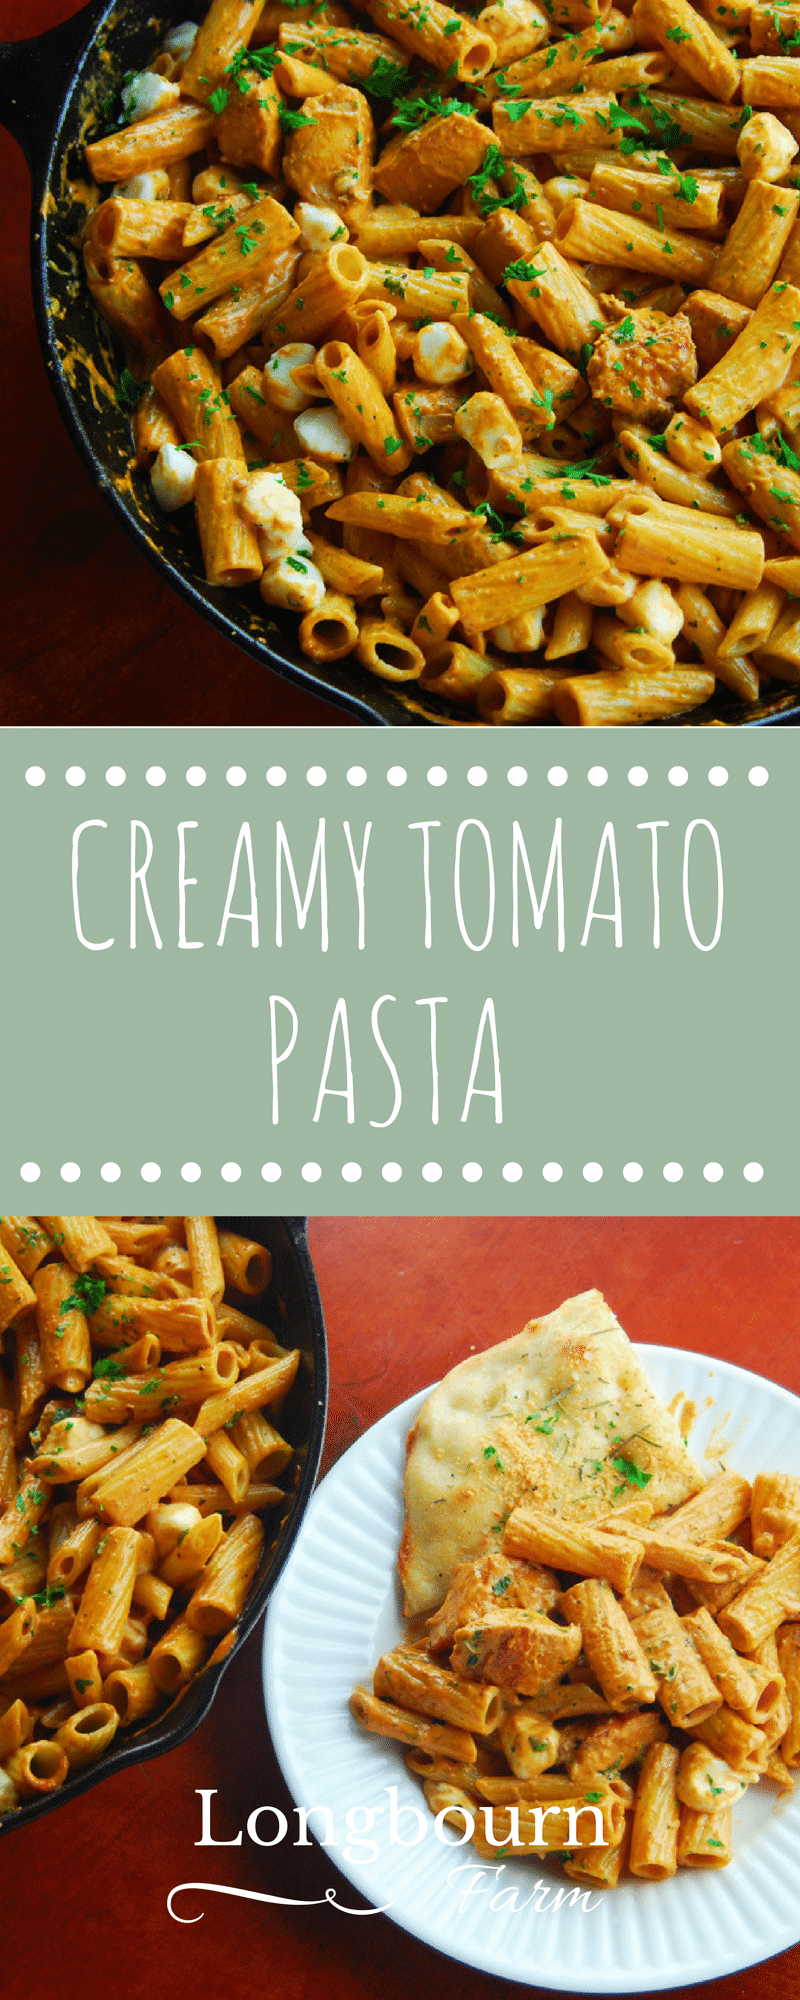 Pasta with Tomato Cream Sauce is a super fast 20-minute meal. Add chicken or keep it vegetarian - the whole family will love it. Try it today! via @longbournfarm